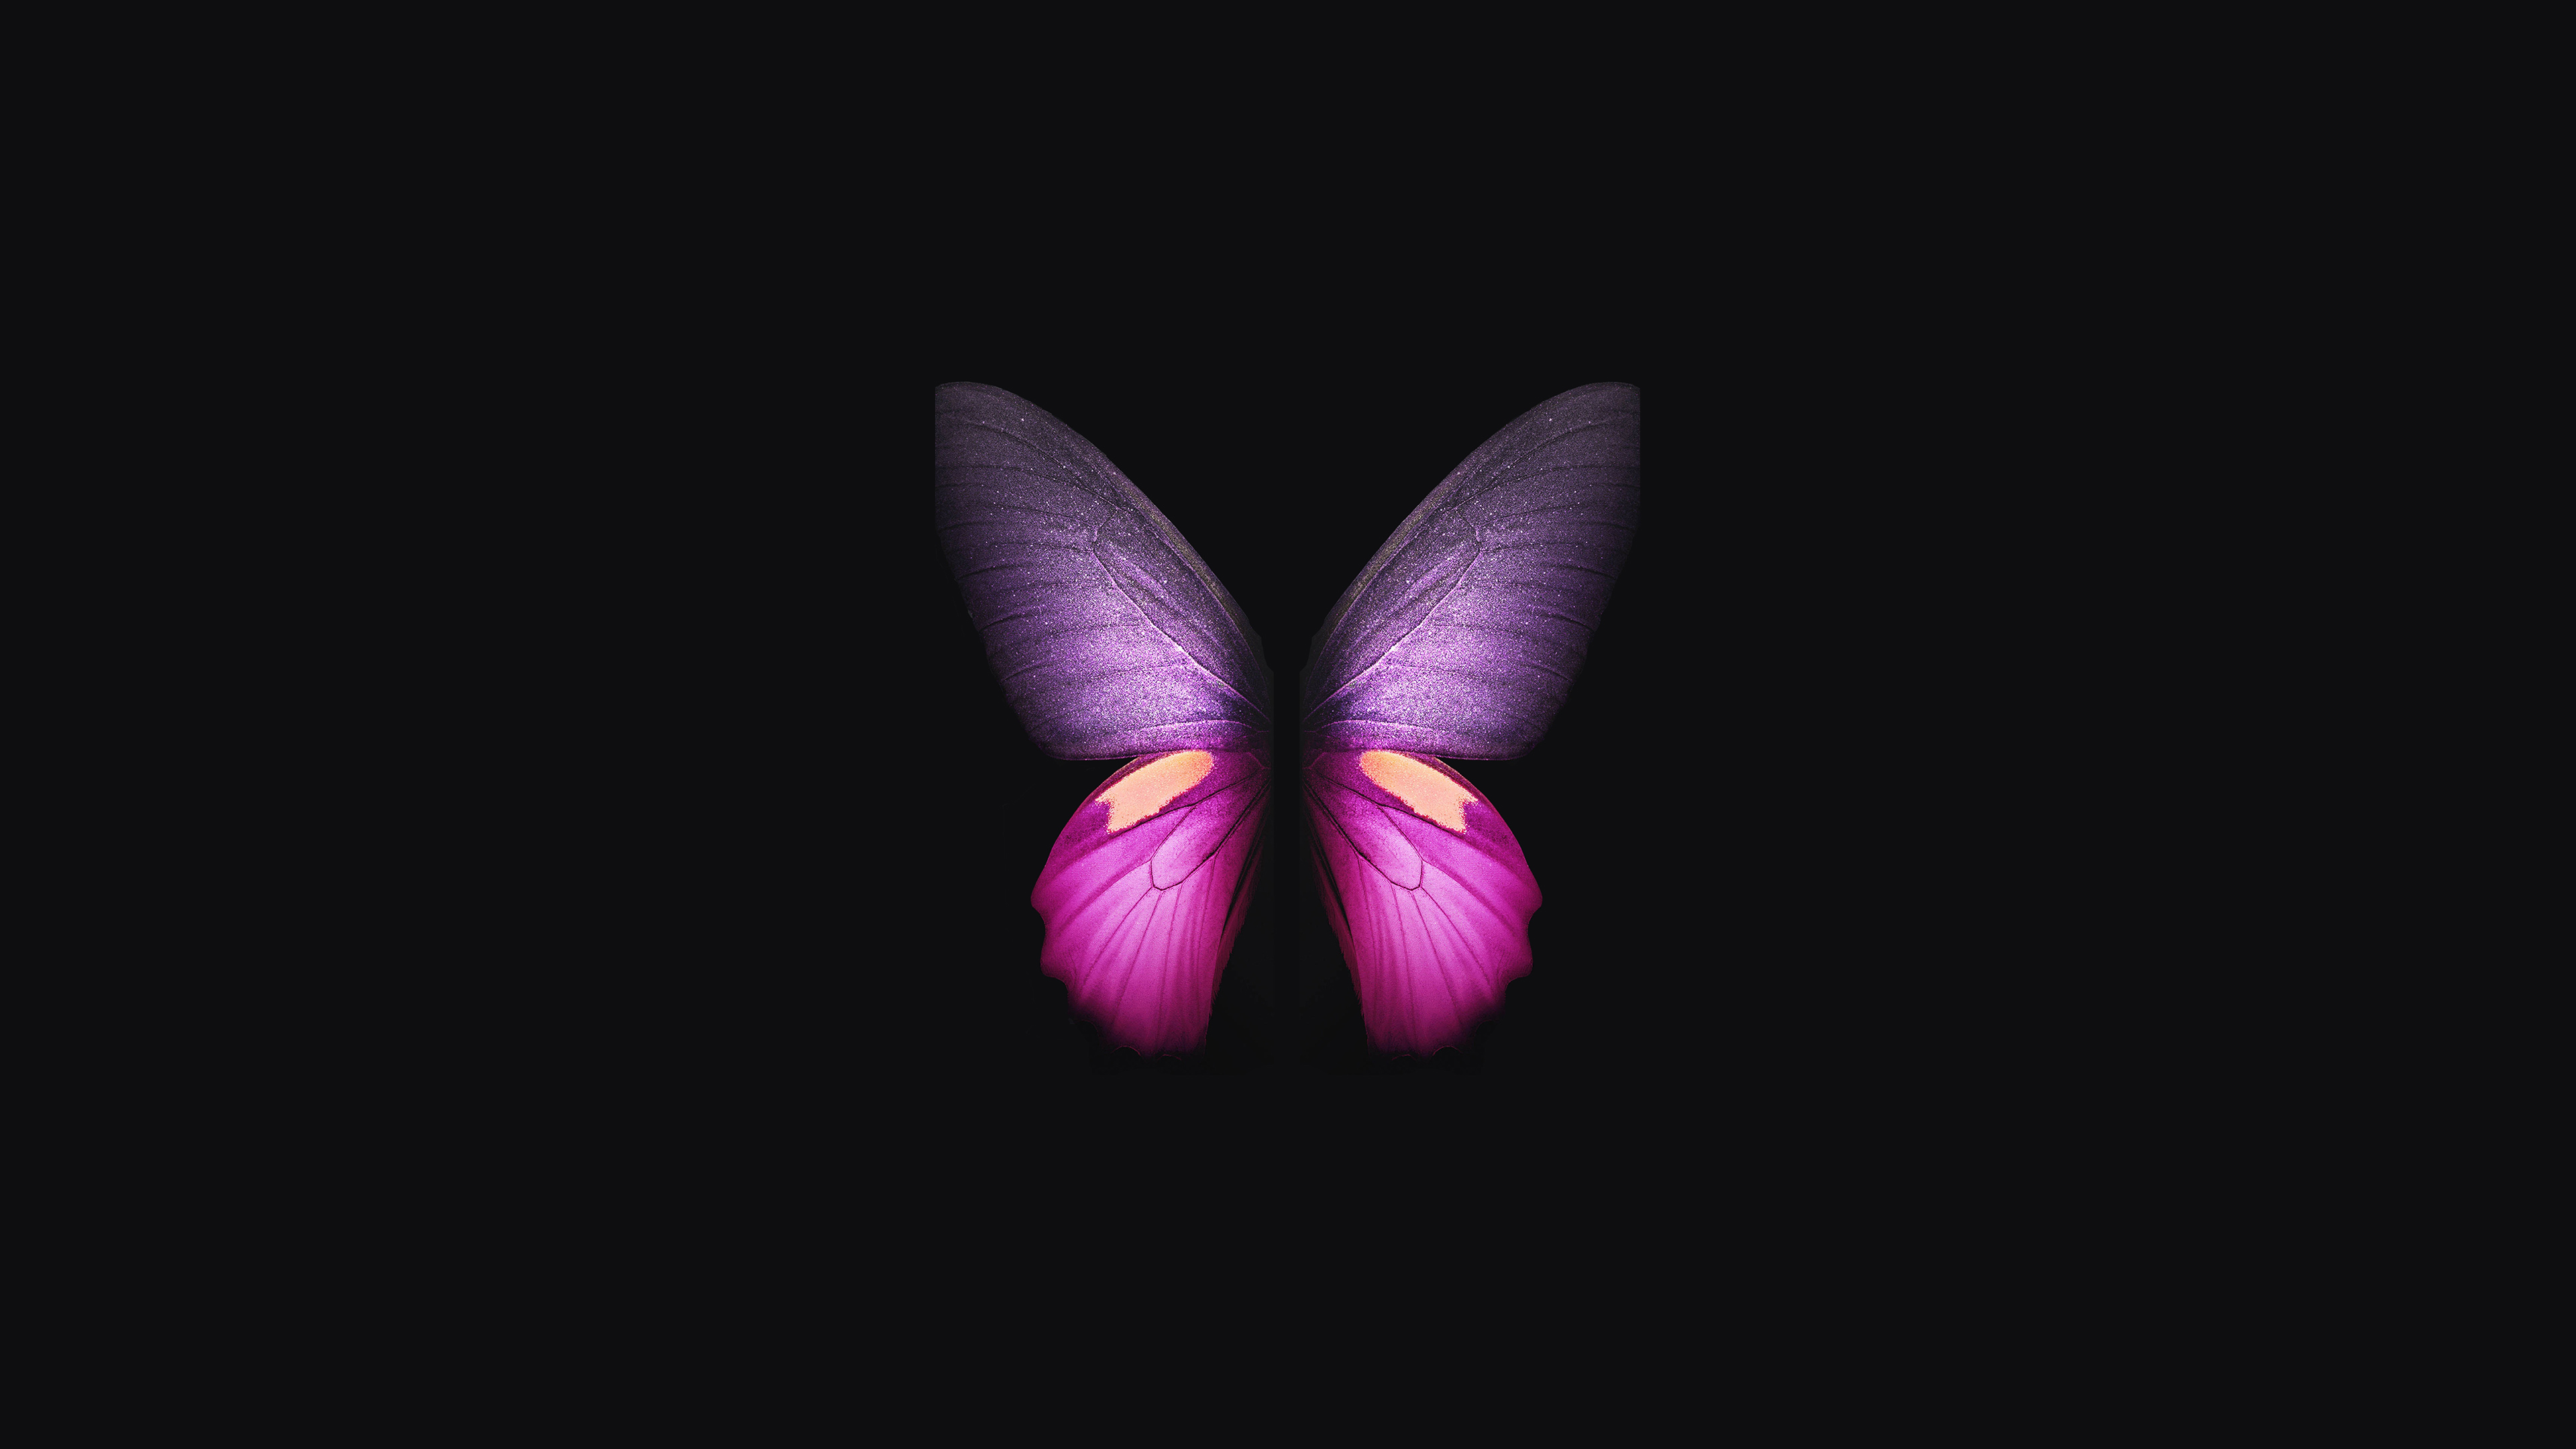 Samsung Galaxy Fold Butterfly Hd Artist 4k Wallpapers Images Backgrounds Photos And Pictures